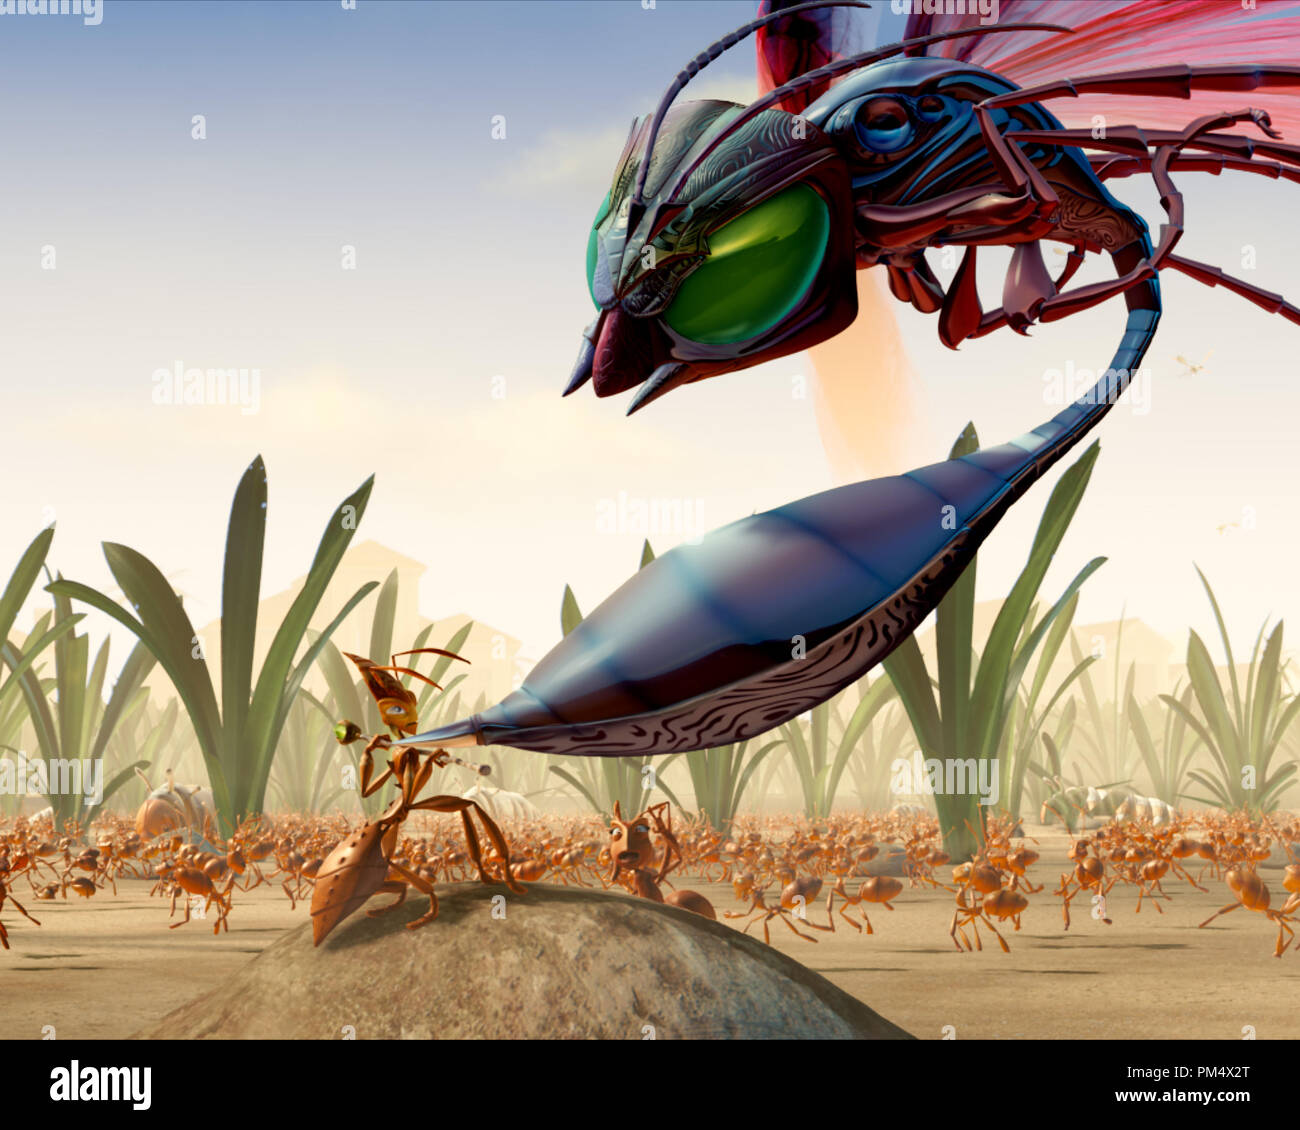 The Ant Bully Stock Photos Amp The Ant Bully Stock Images